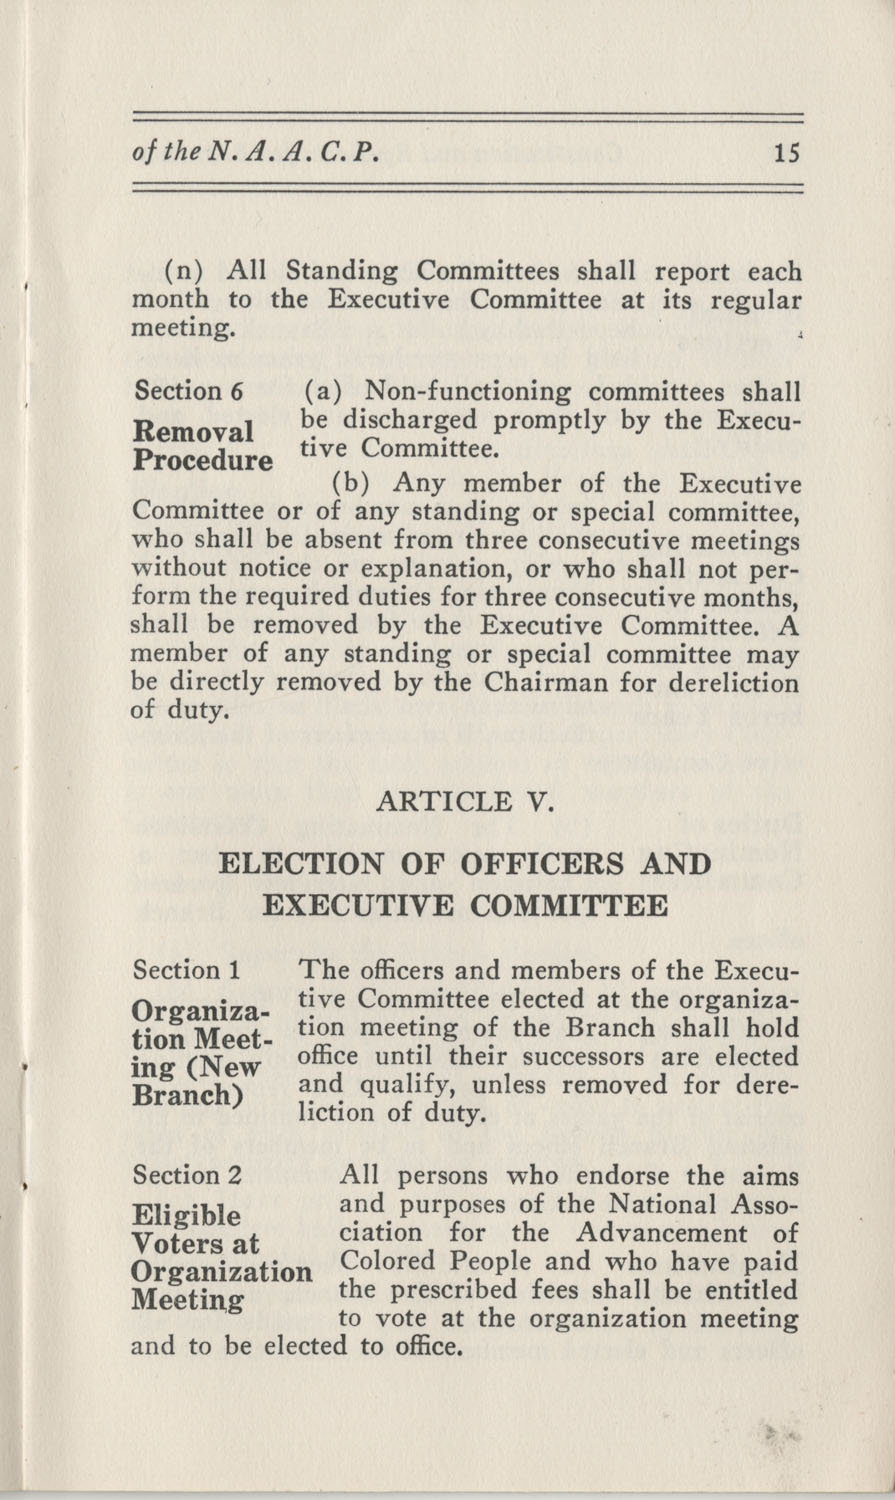 Constitutions and By-Laws, September 1960, Page 15